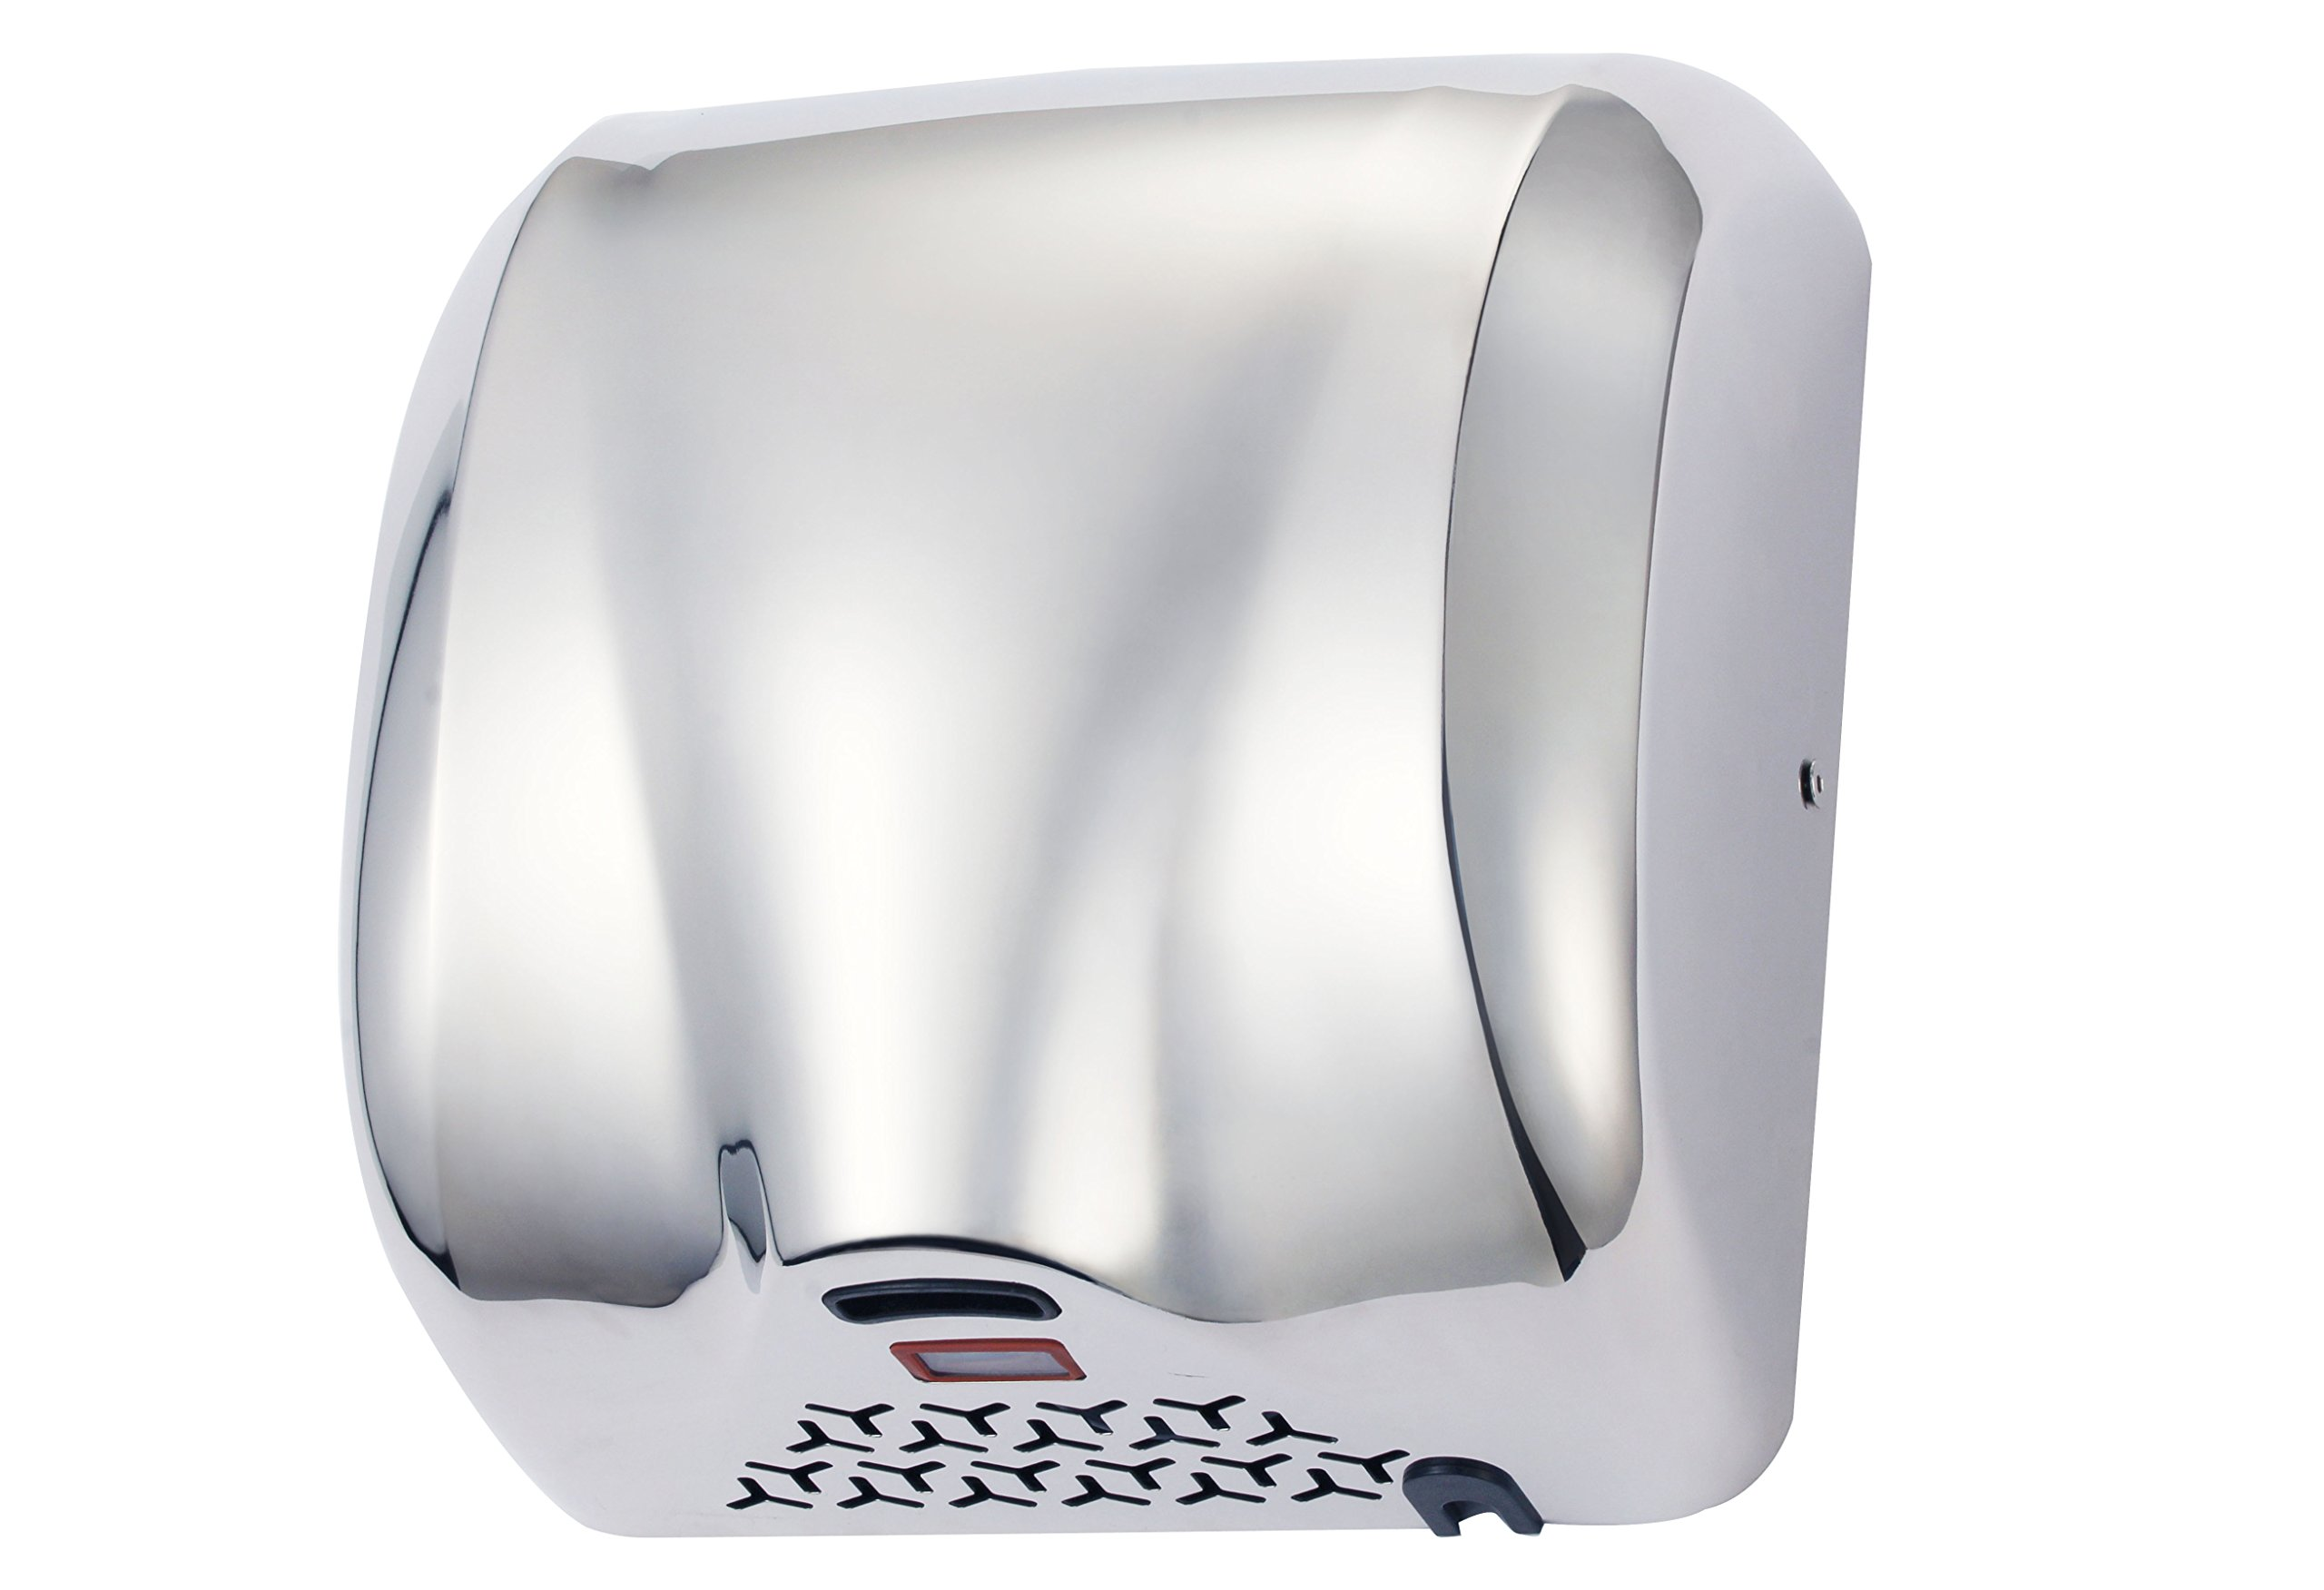 TCBunny K2017 High Speed 1800W Fast 90m/s Dry Hot Stainless Steel Chrome Automatic Hand Dryer for Commercial Bathroom, Silver